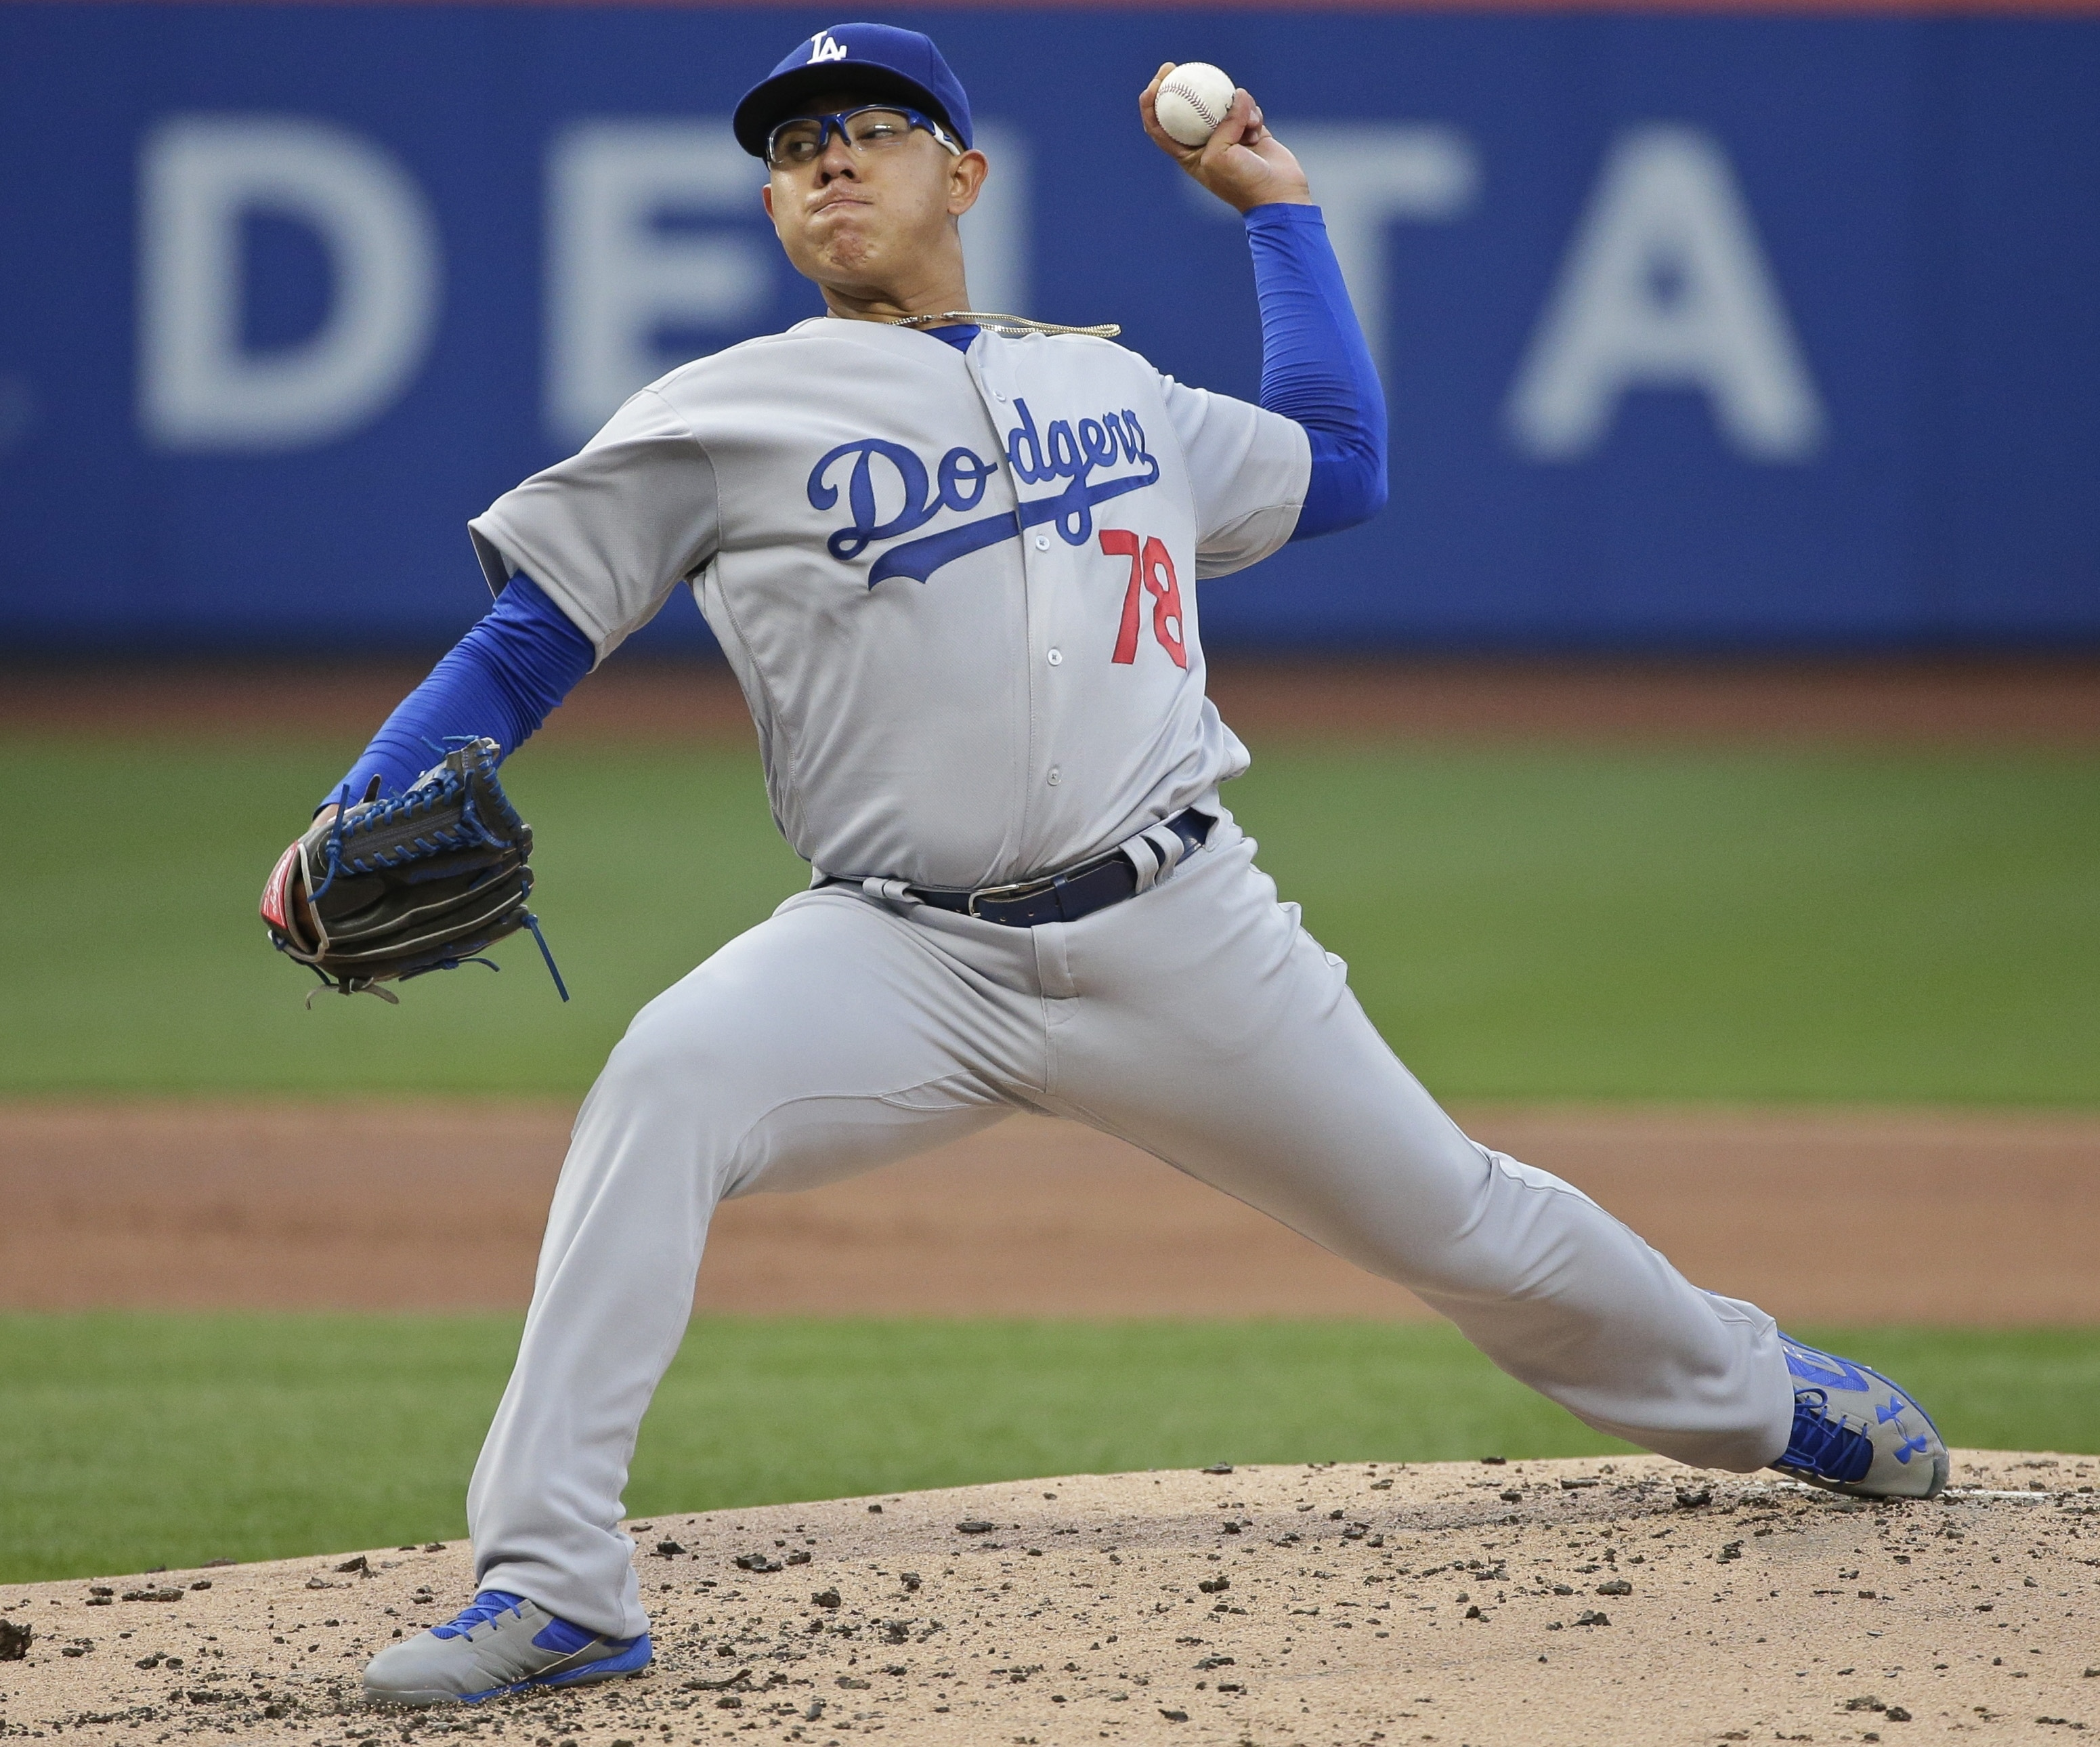 Los Angeles Dodgers' Julio Arias delivers a pitch during the first inning of a baseball game against the New York Mets on Friday, May 27, 2016, in New York. (AP Photo/Frank Franklin II)